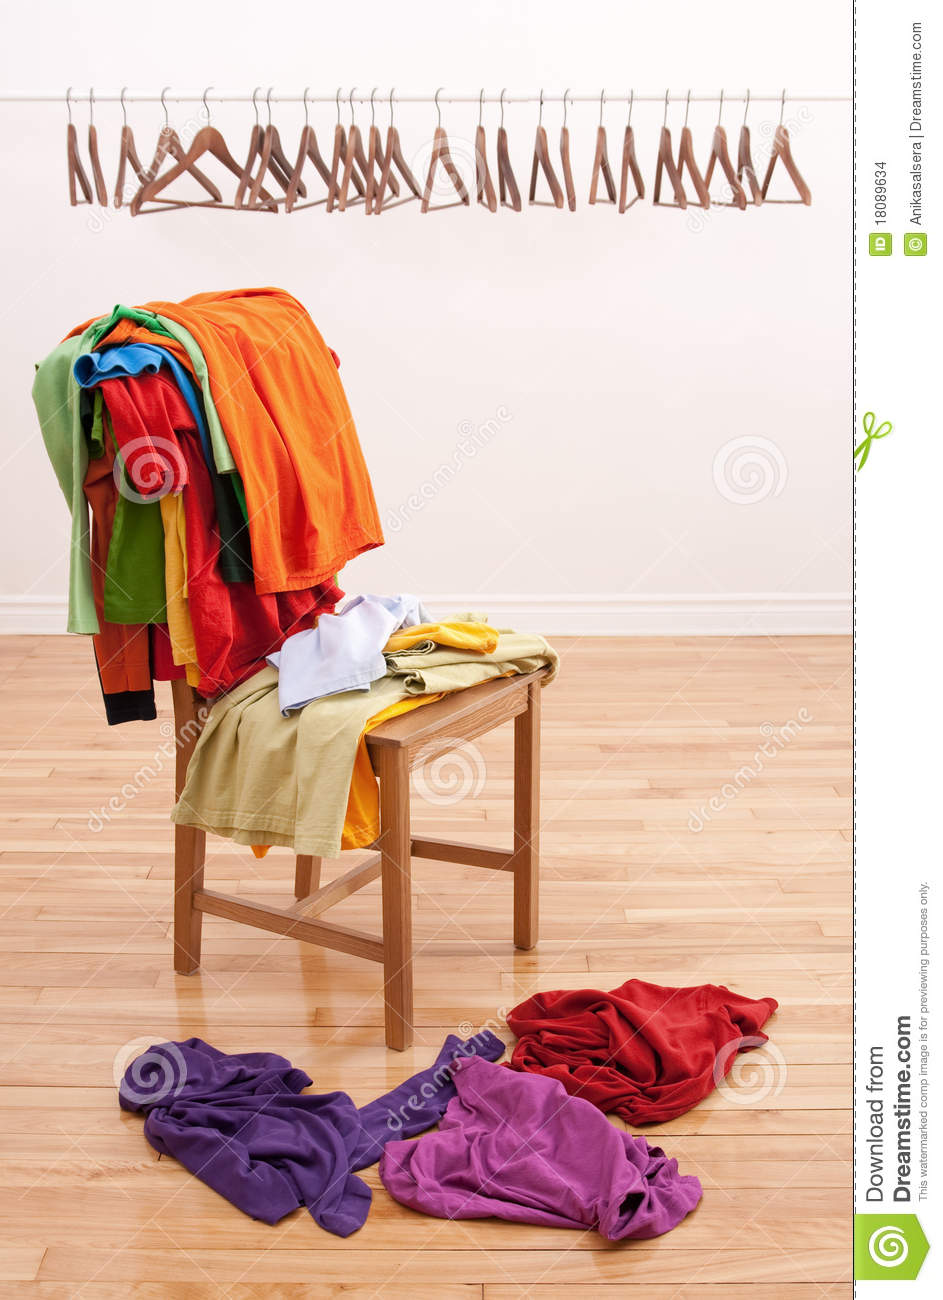 Messy Clothes On A Chair And Empty Hangers Stock Photo